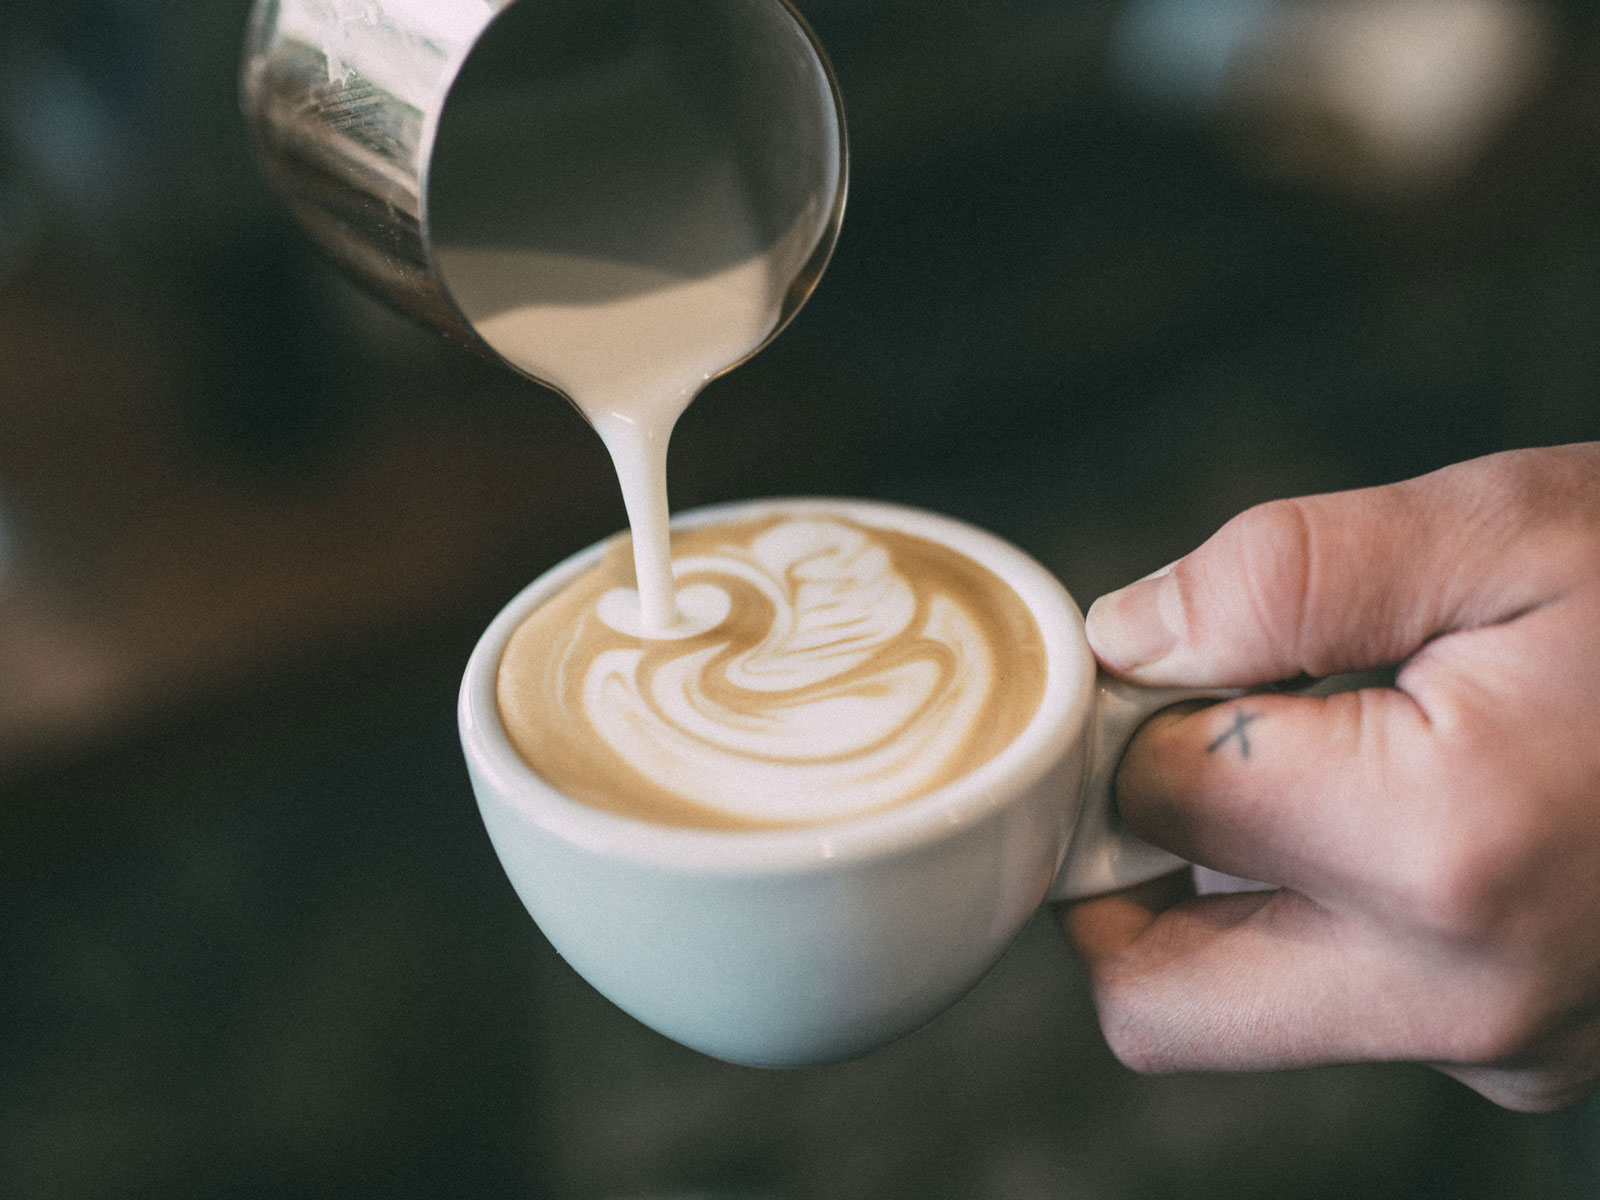 National Coffee Day Deals: All the Free Drinks and Discounts You Need to Know About